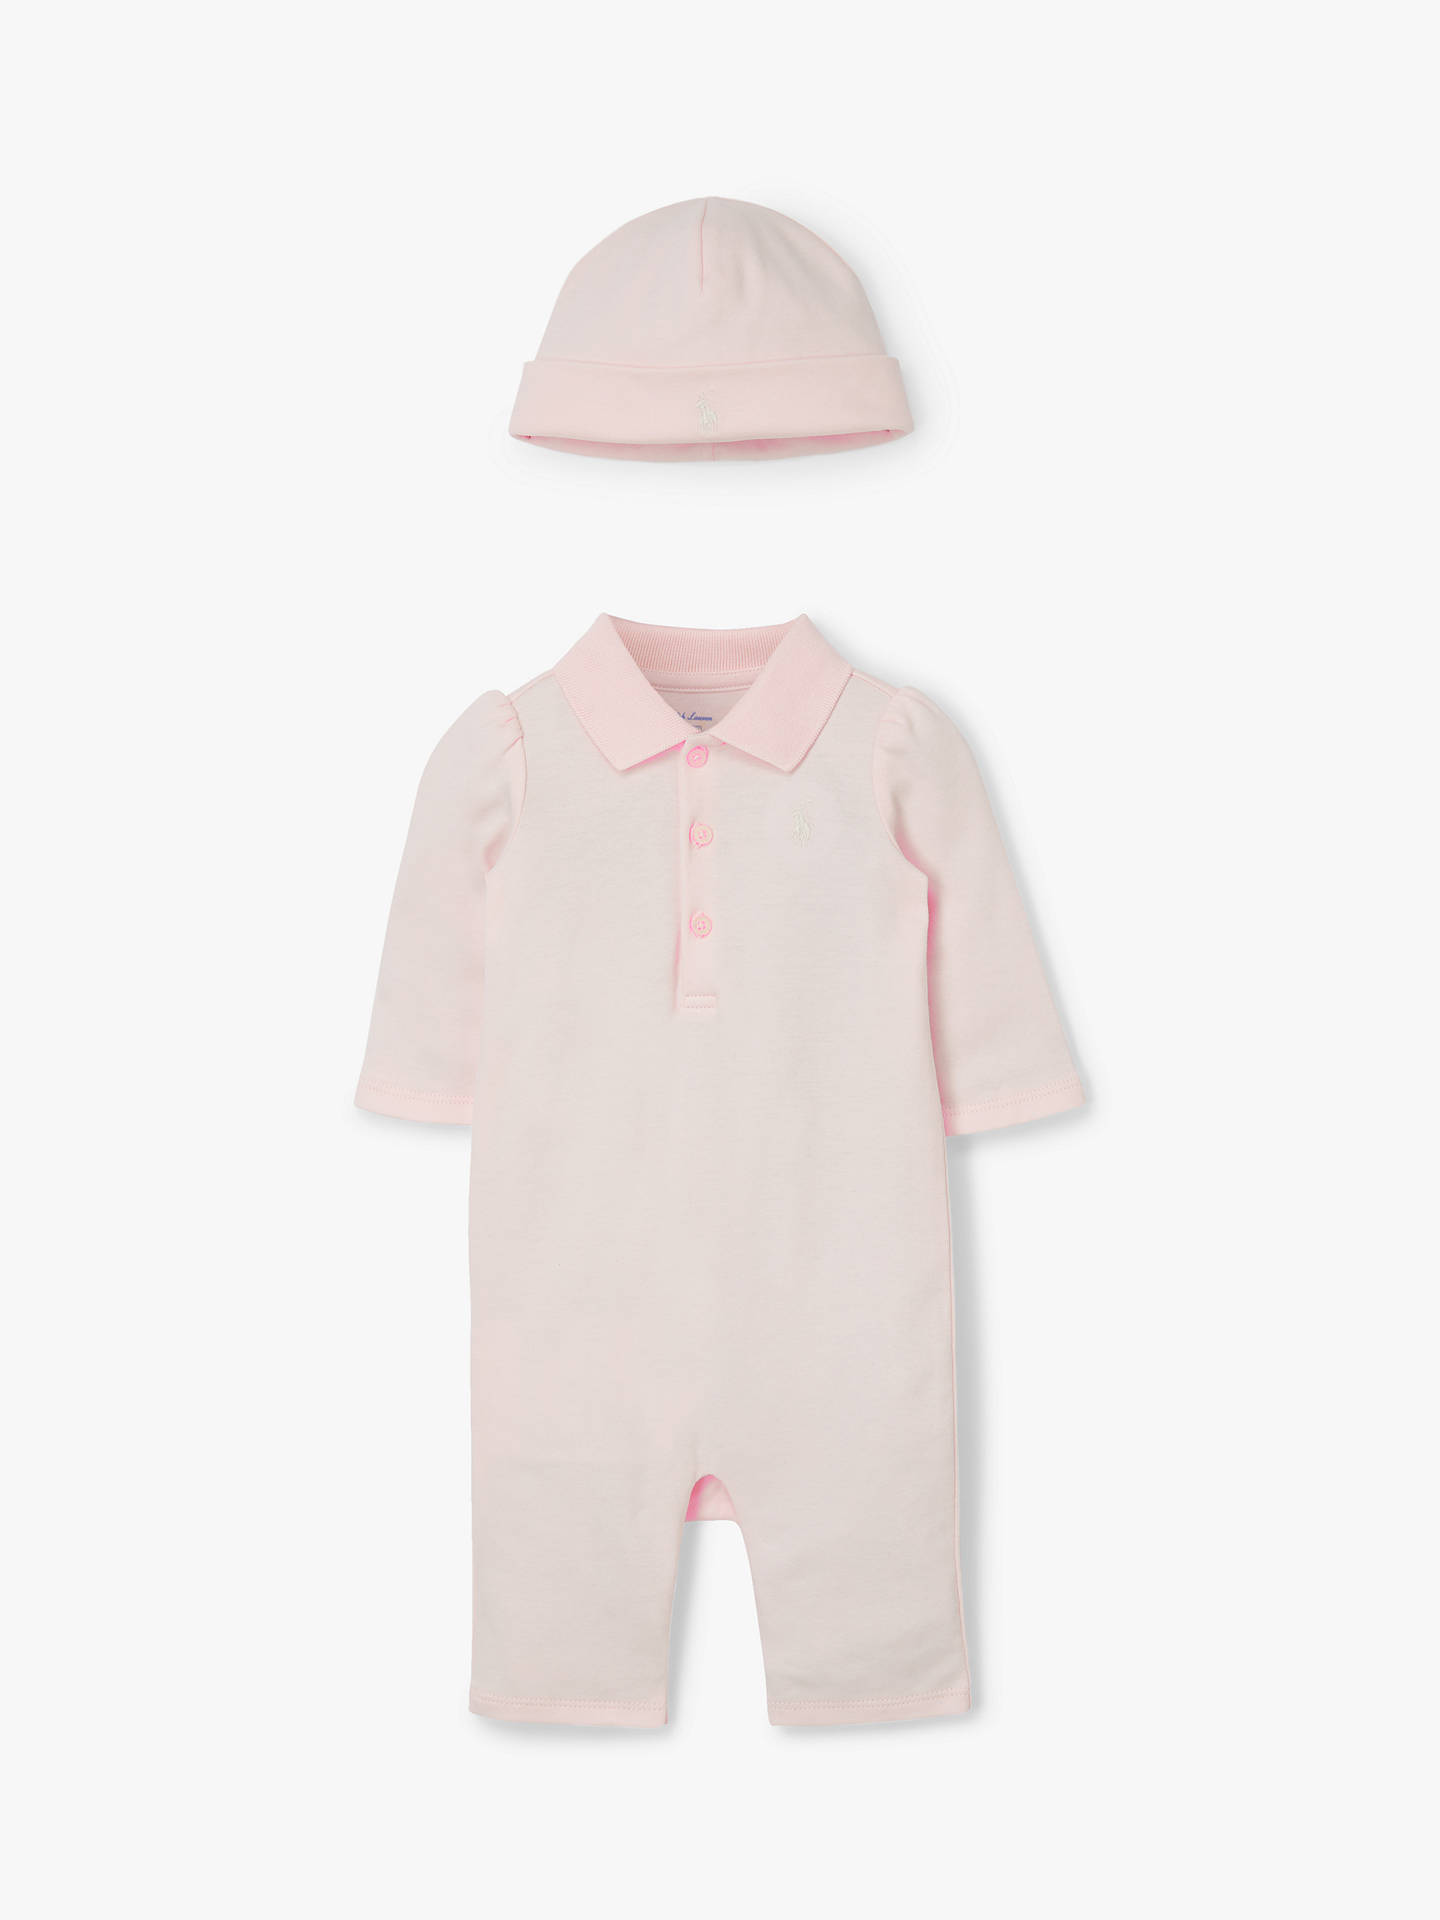 Ralph Lauren Baby Pink Outfit Polo SetLight mnw0yv8ON